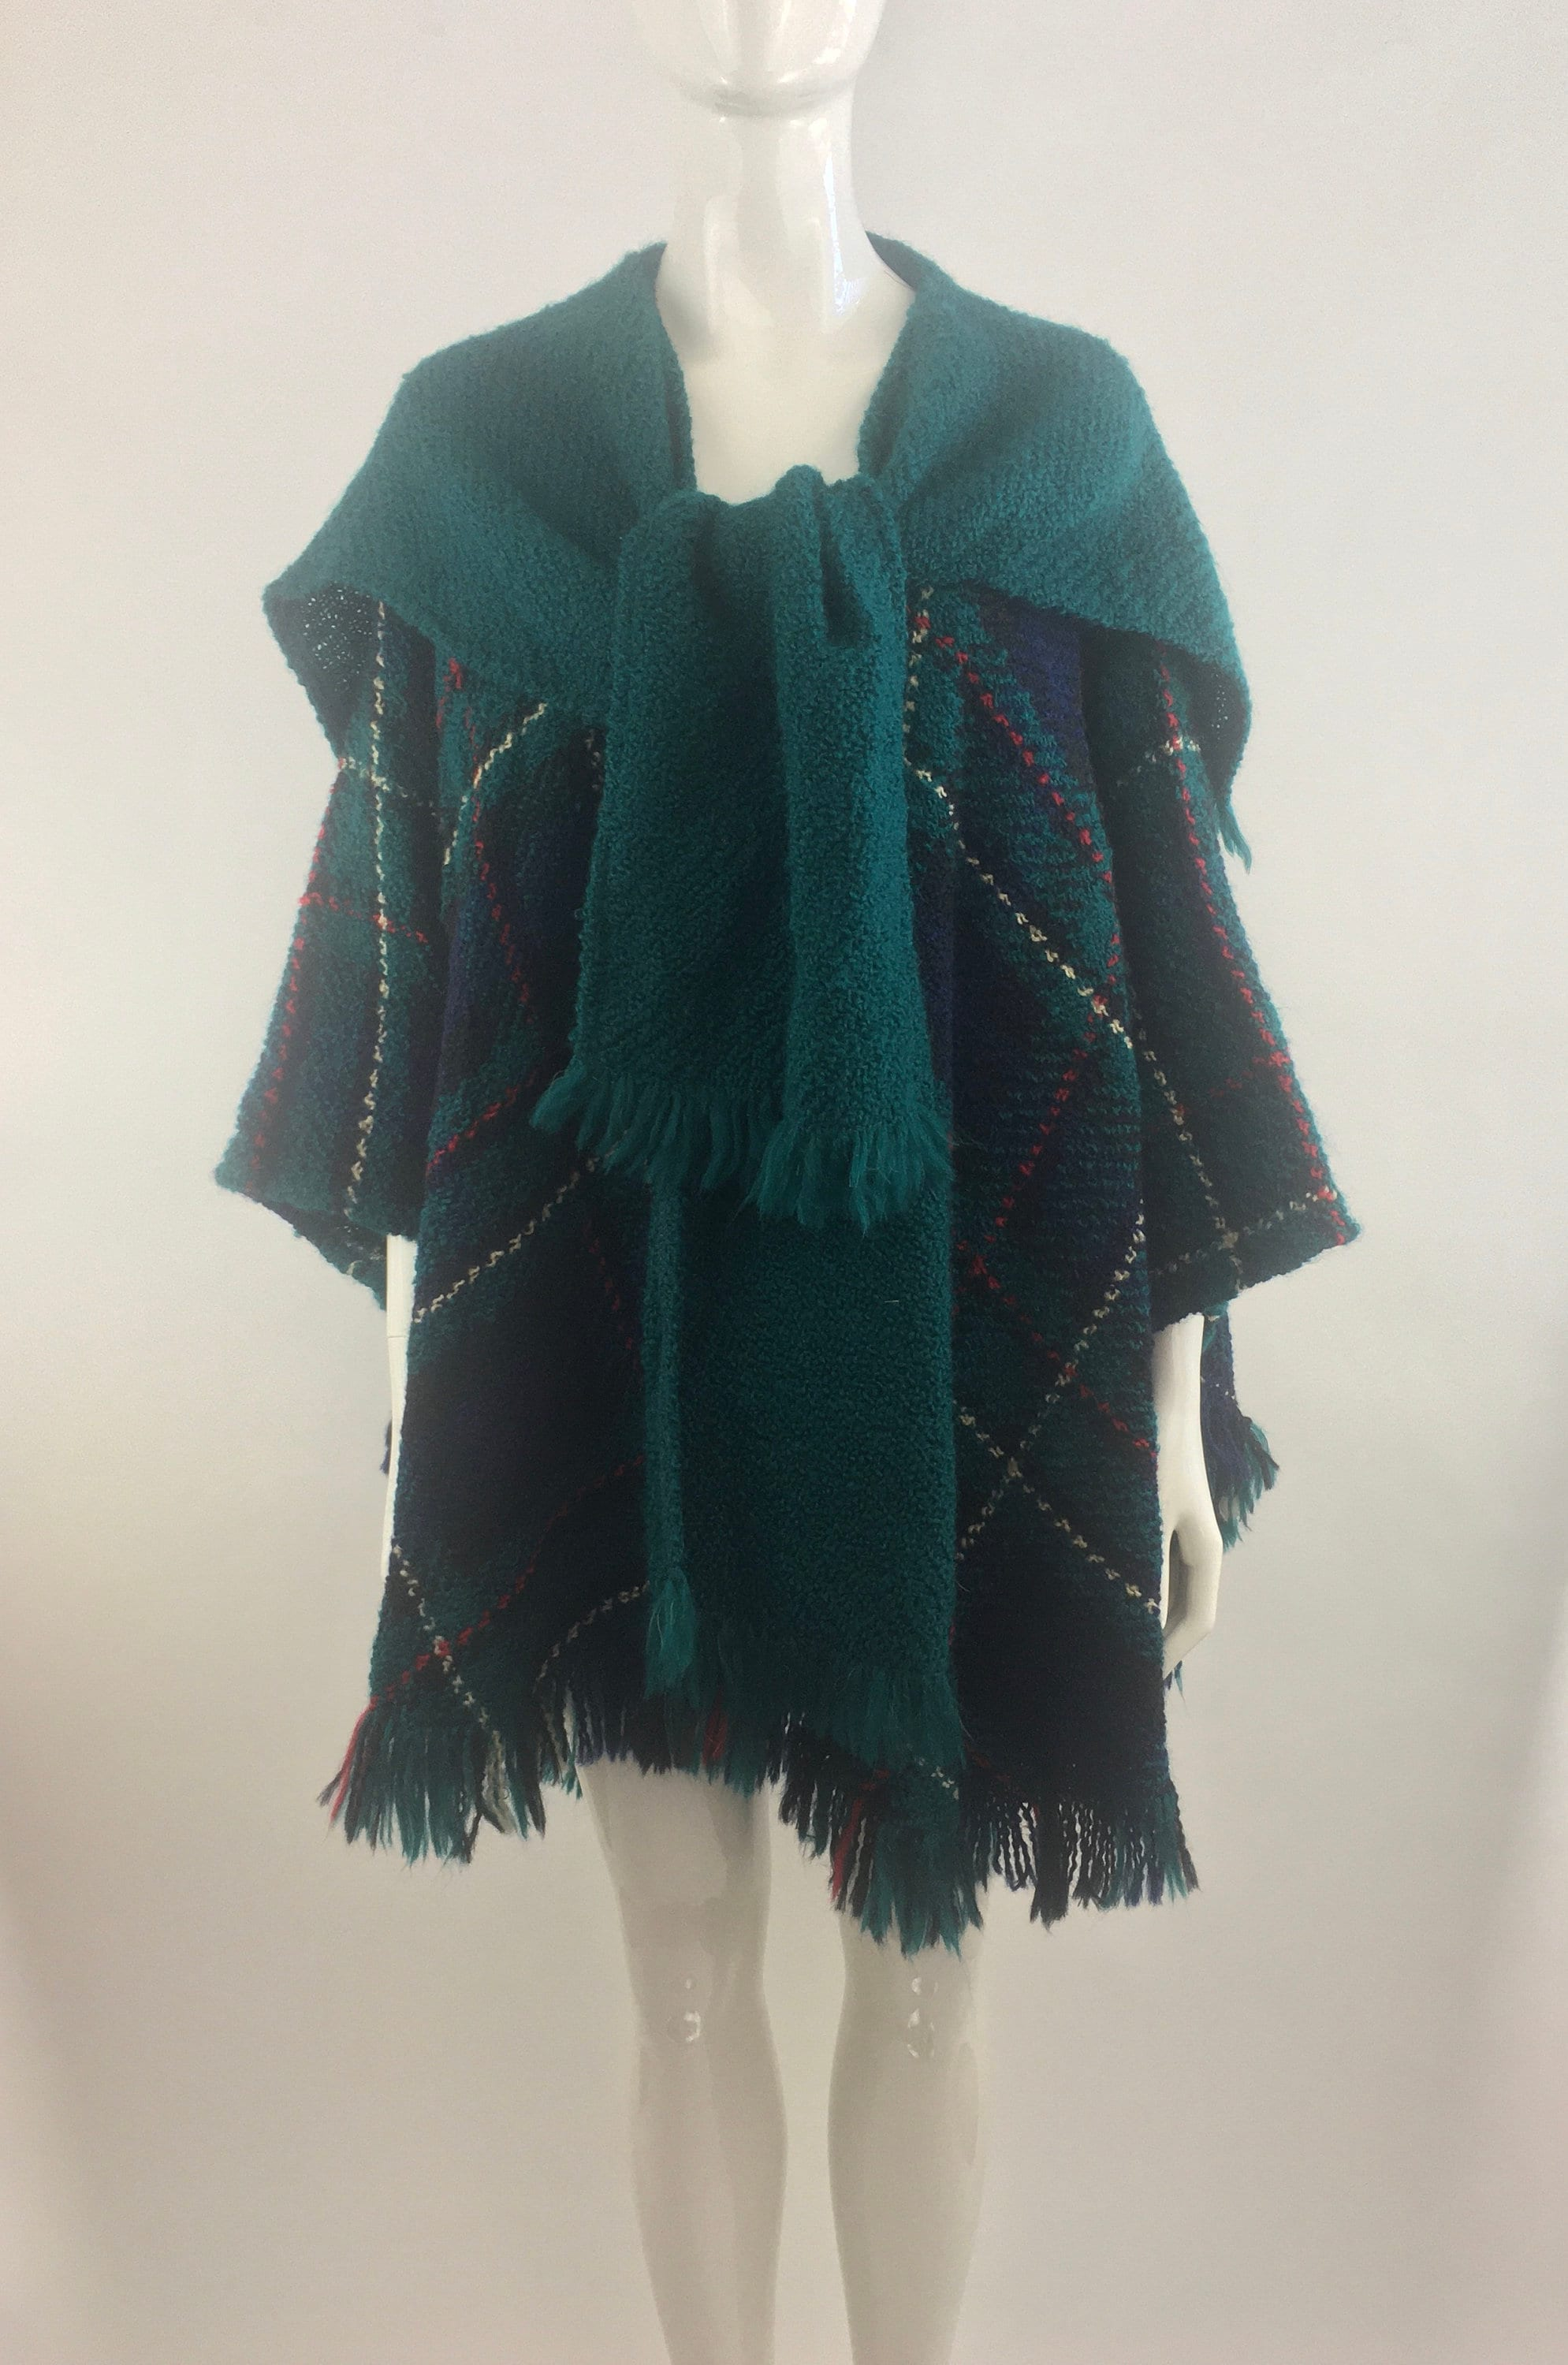 Vintage Scarf Styles -1920s to 1960s 1980s Boyne Valley Weavers Hand Knitted Green Plaid Poncho W Attached ScarfClassic ShawlPlaid CapeWool Blend DusterSize Os $0.00 AT vintagedancer.com